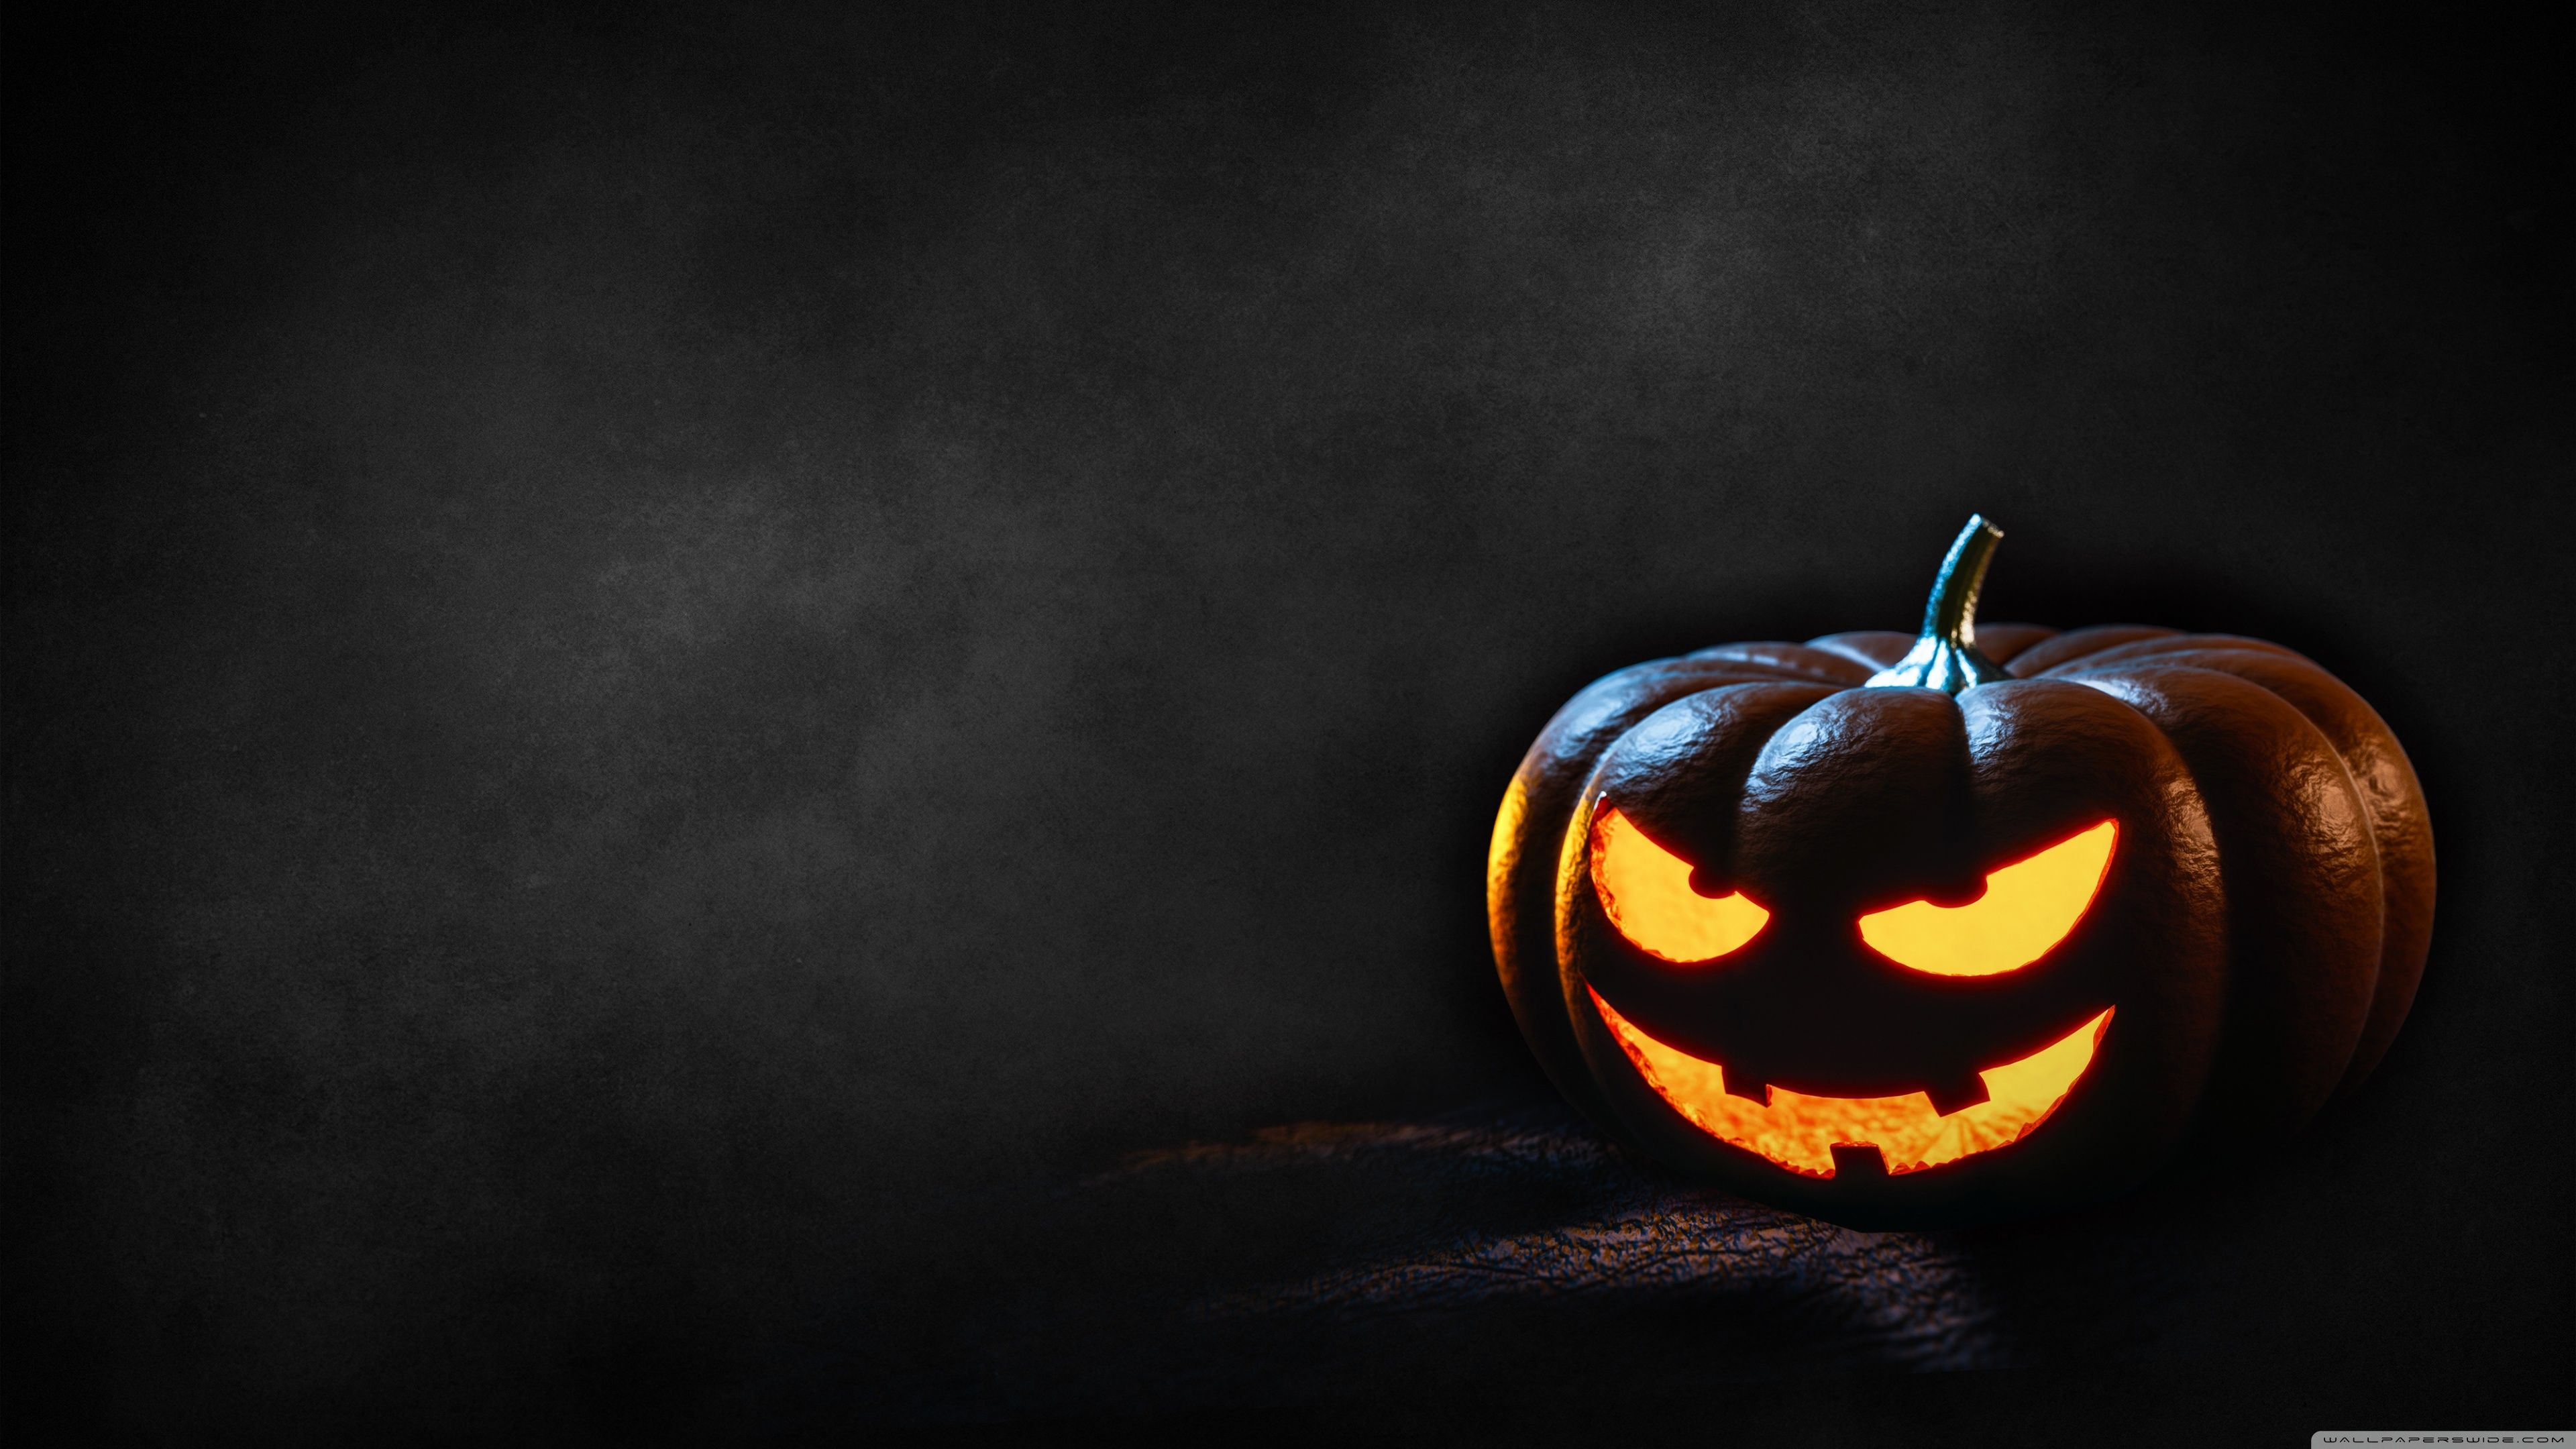 40 HD Halloween Desktop Wallpapers   Download at WallpaperBro 3840x2160